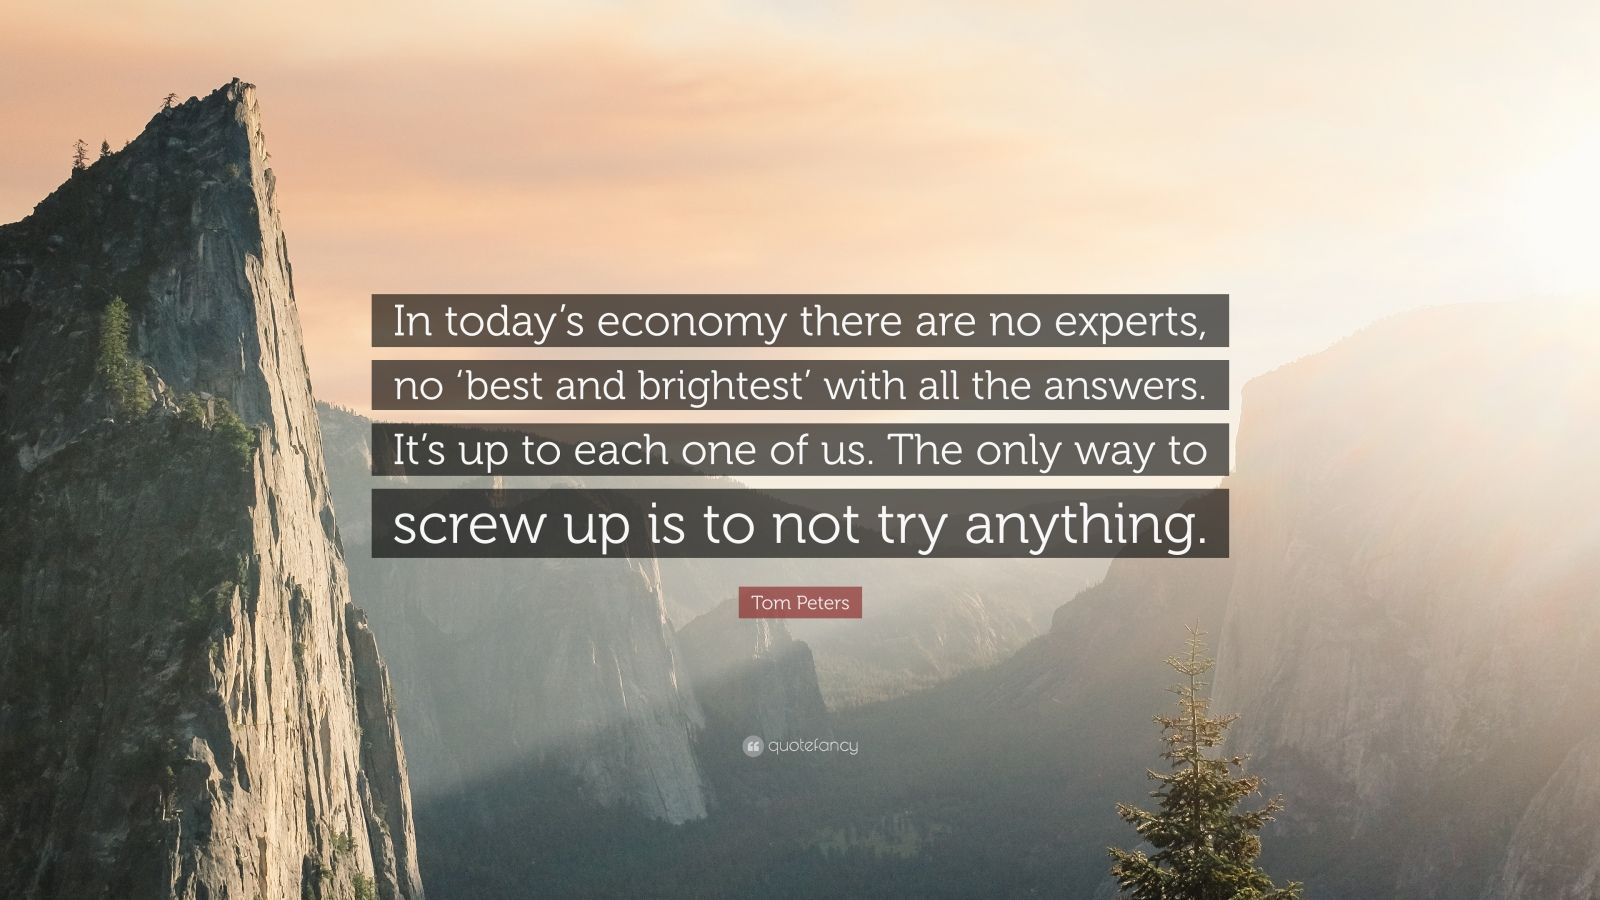 "Tom Peters Quote: ""In today's economy there are no experts, no 'best and brightest' with all the answers. It's up to each one of us. The only way to screw up is to not try anything."""